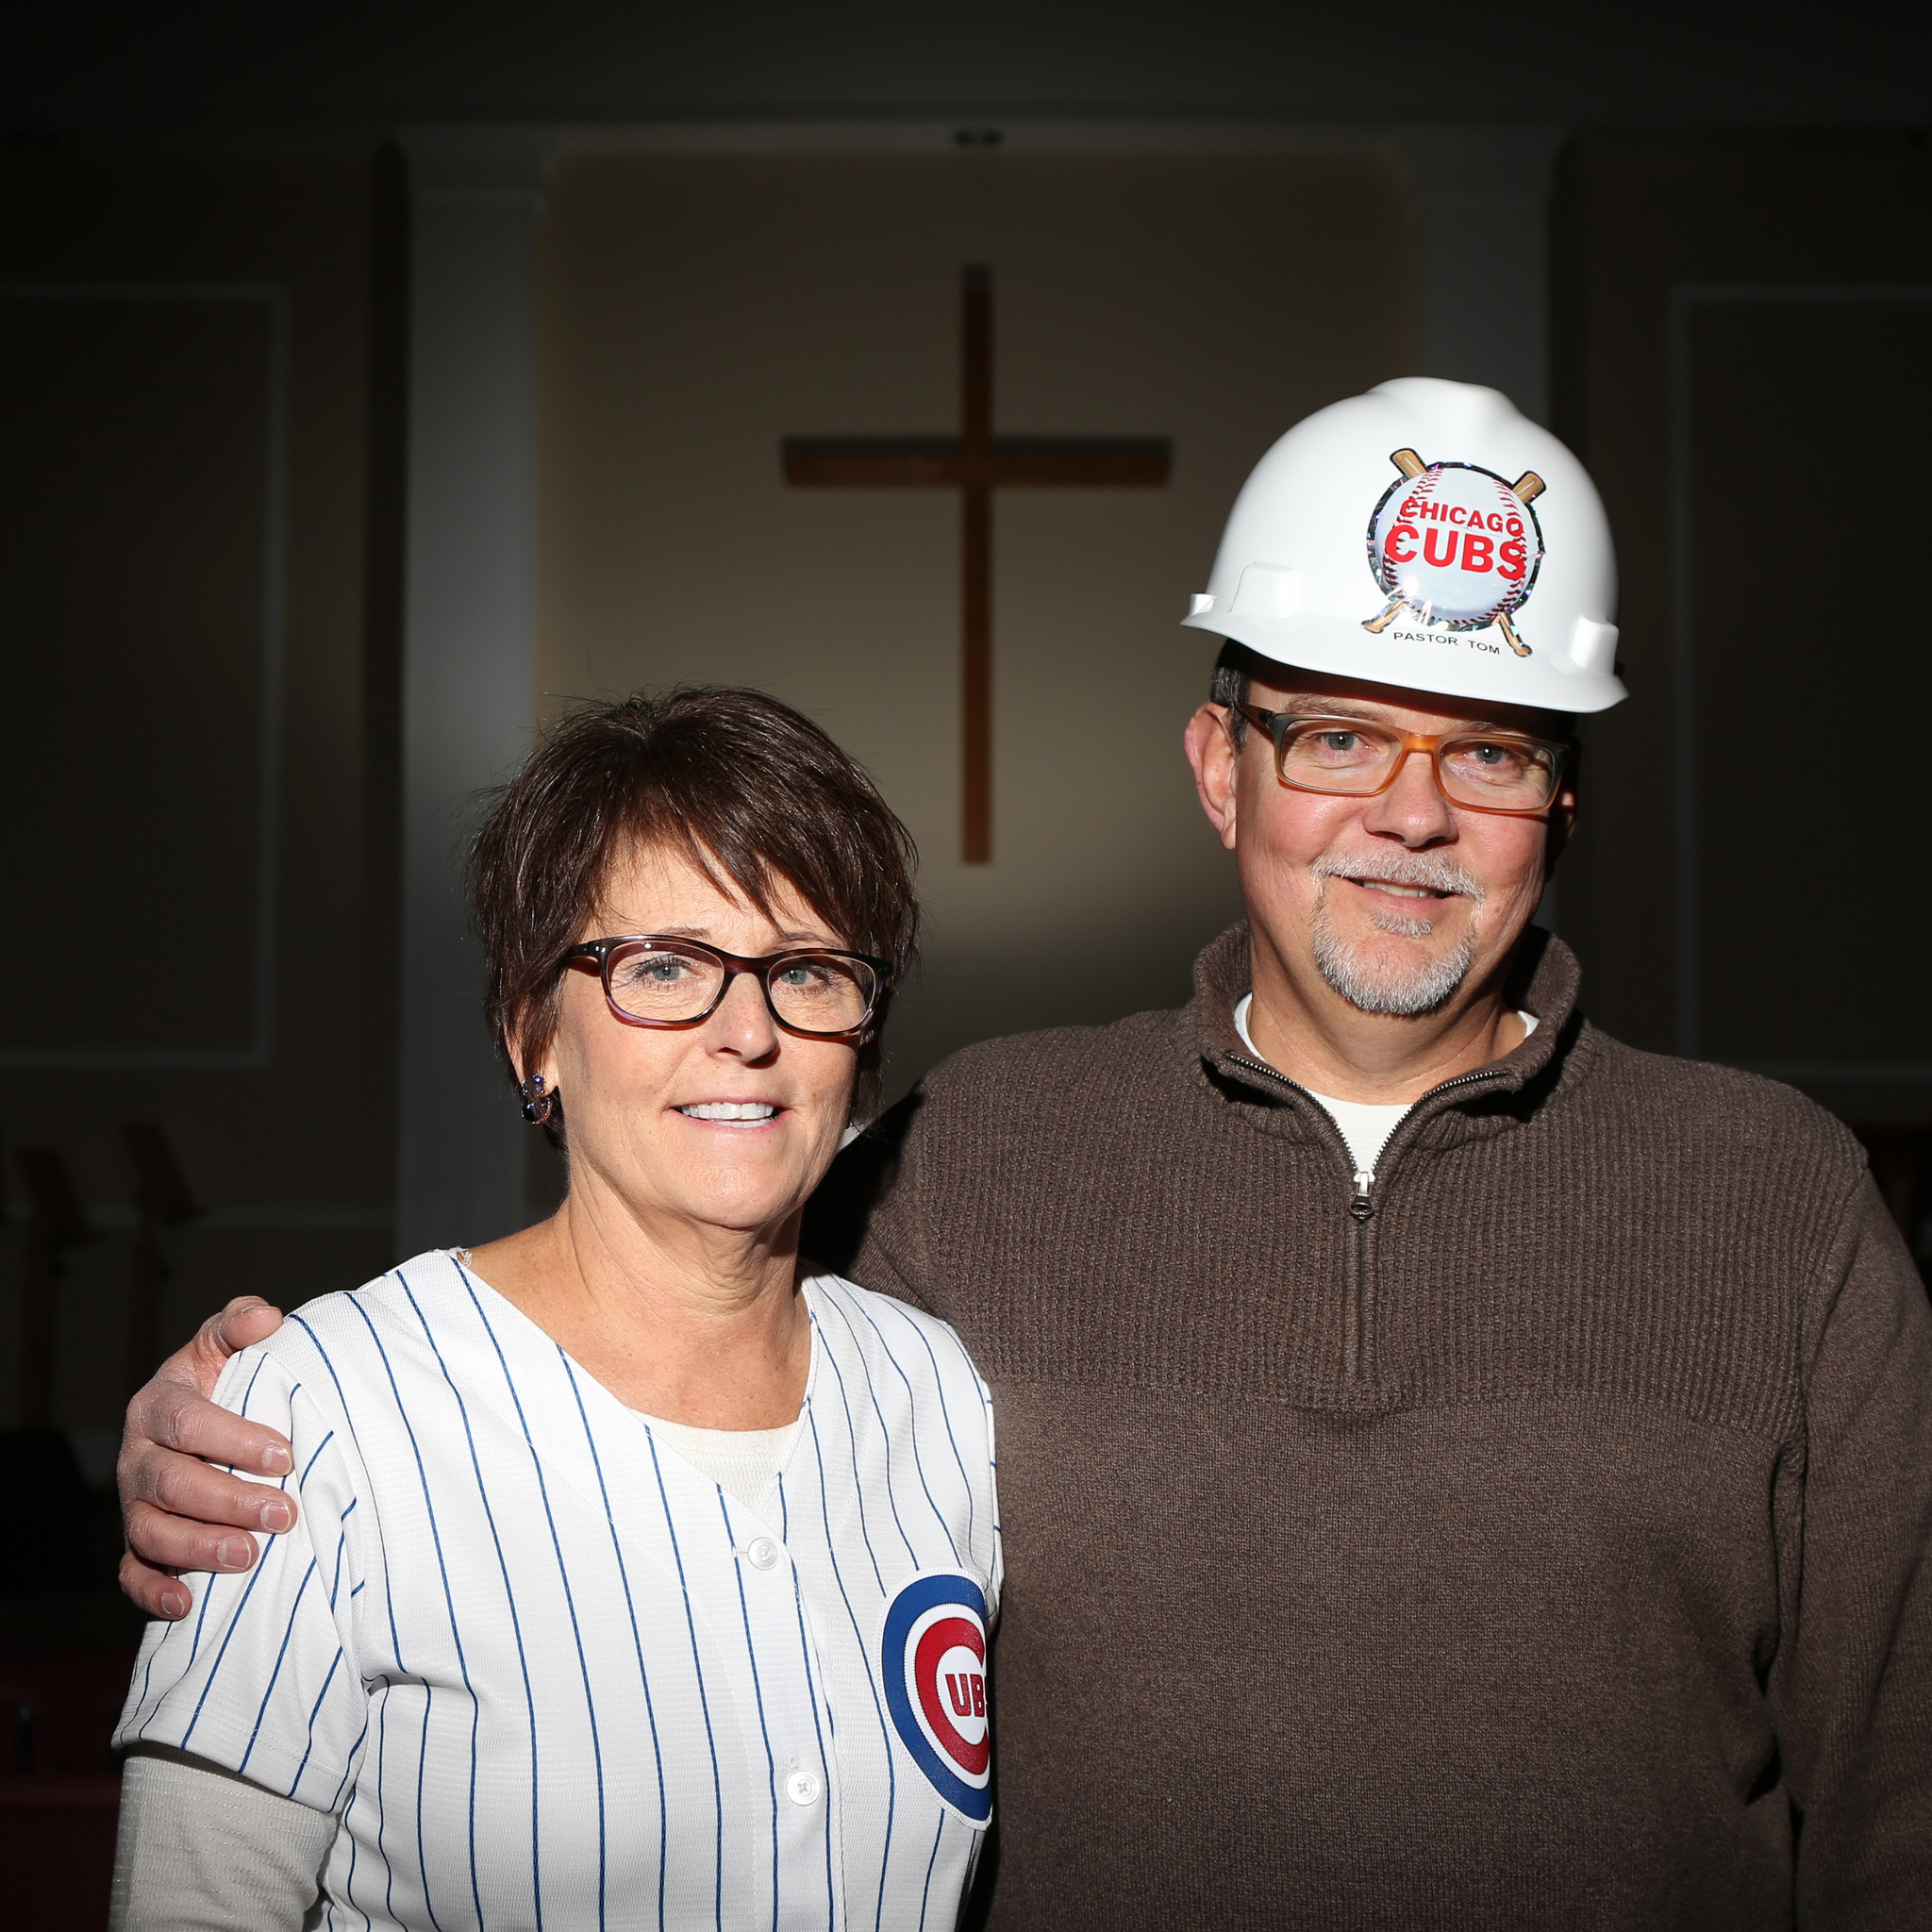 ben zobrists journey to cubs a family homecoming of sorts